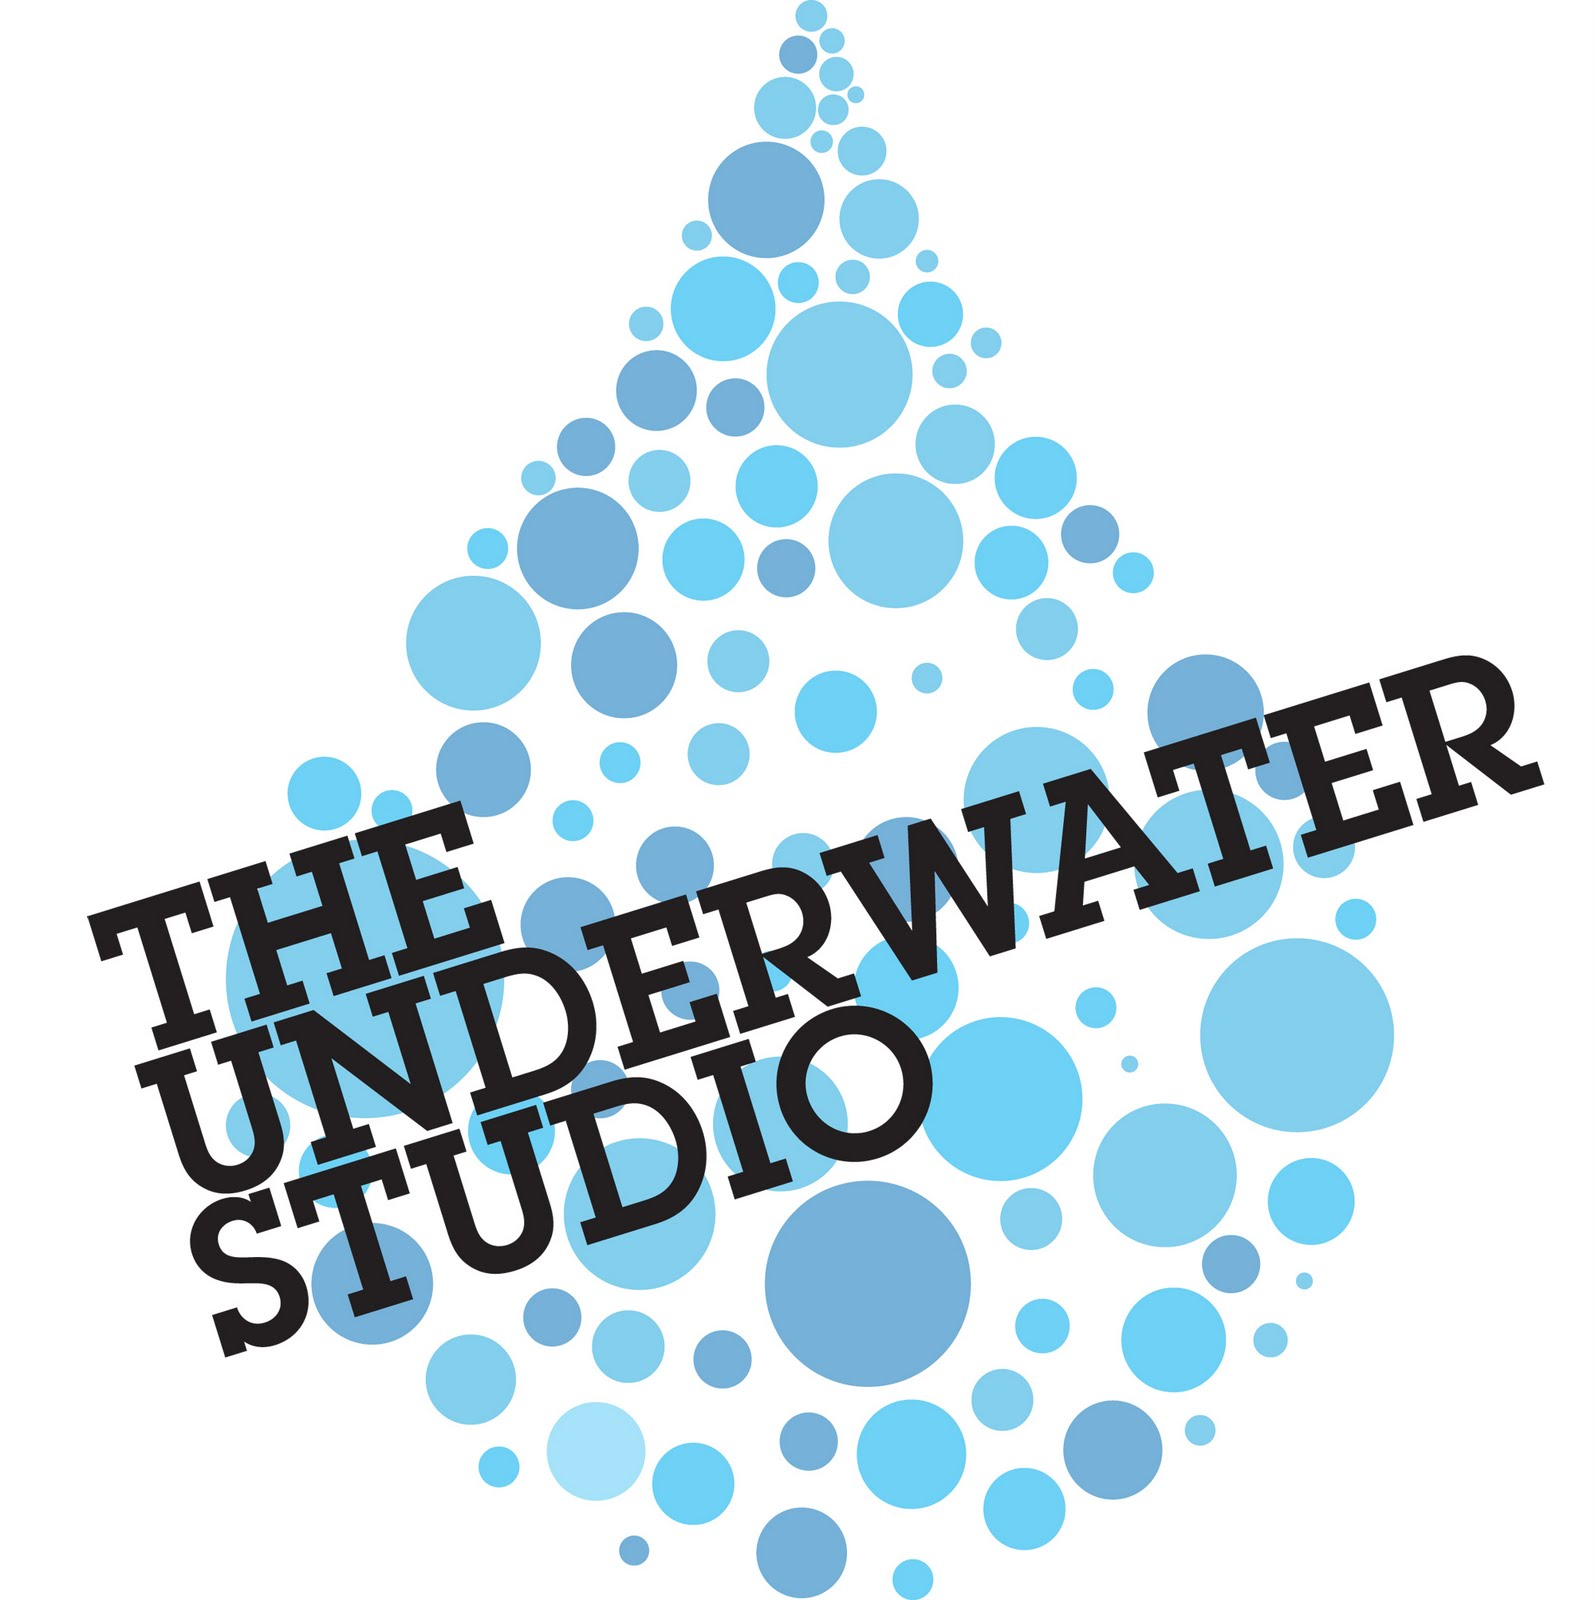 Ideas for an underwater photography studio i got this work through my